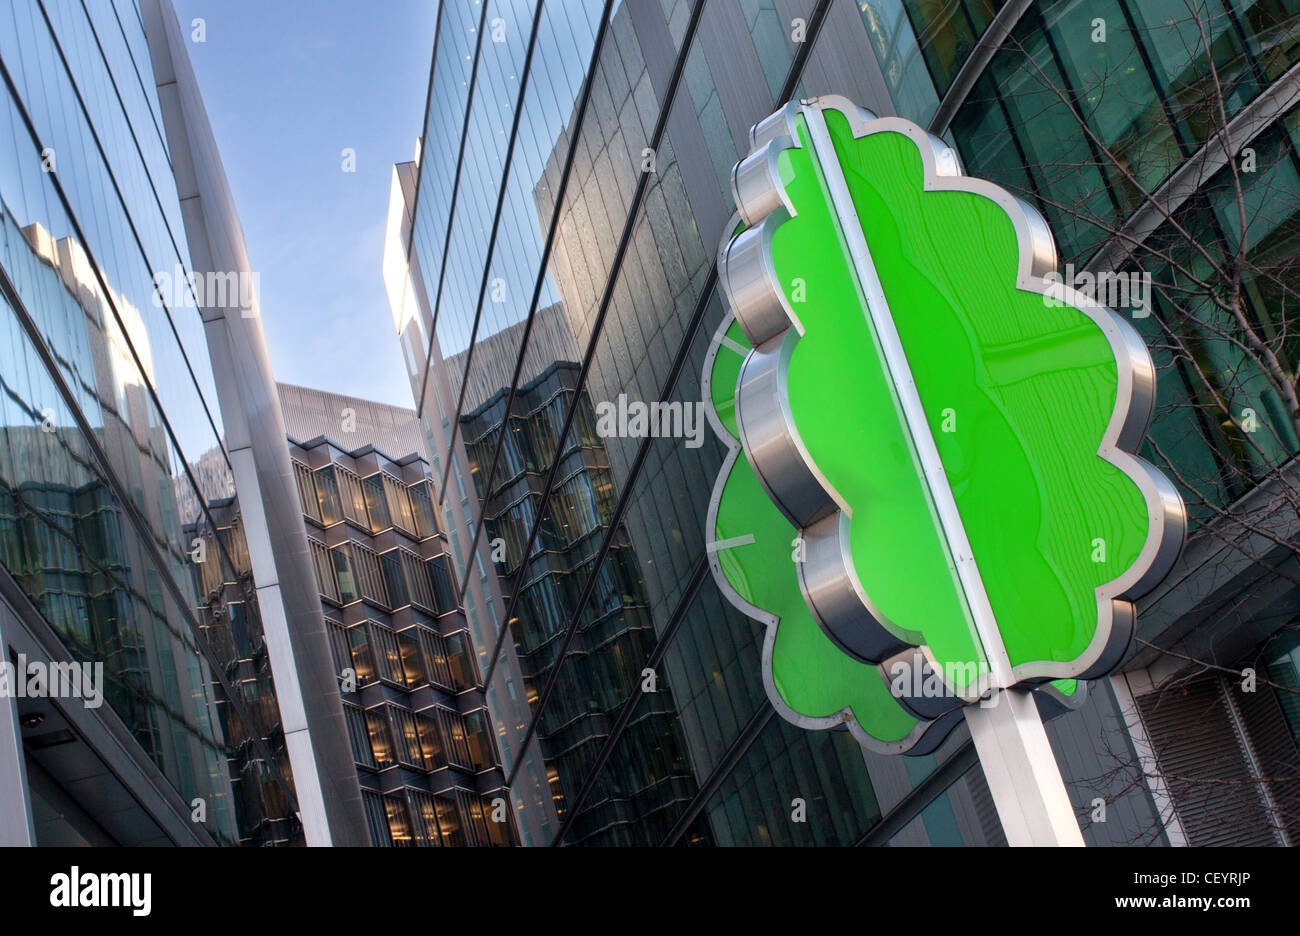 The Evergreen sculpture by David Batchelor at More London, Southwark, London. - Stock Image